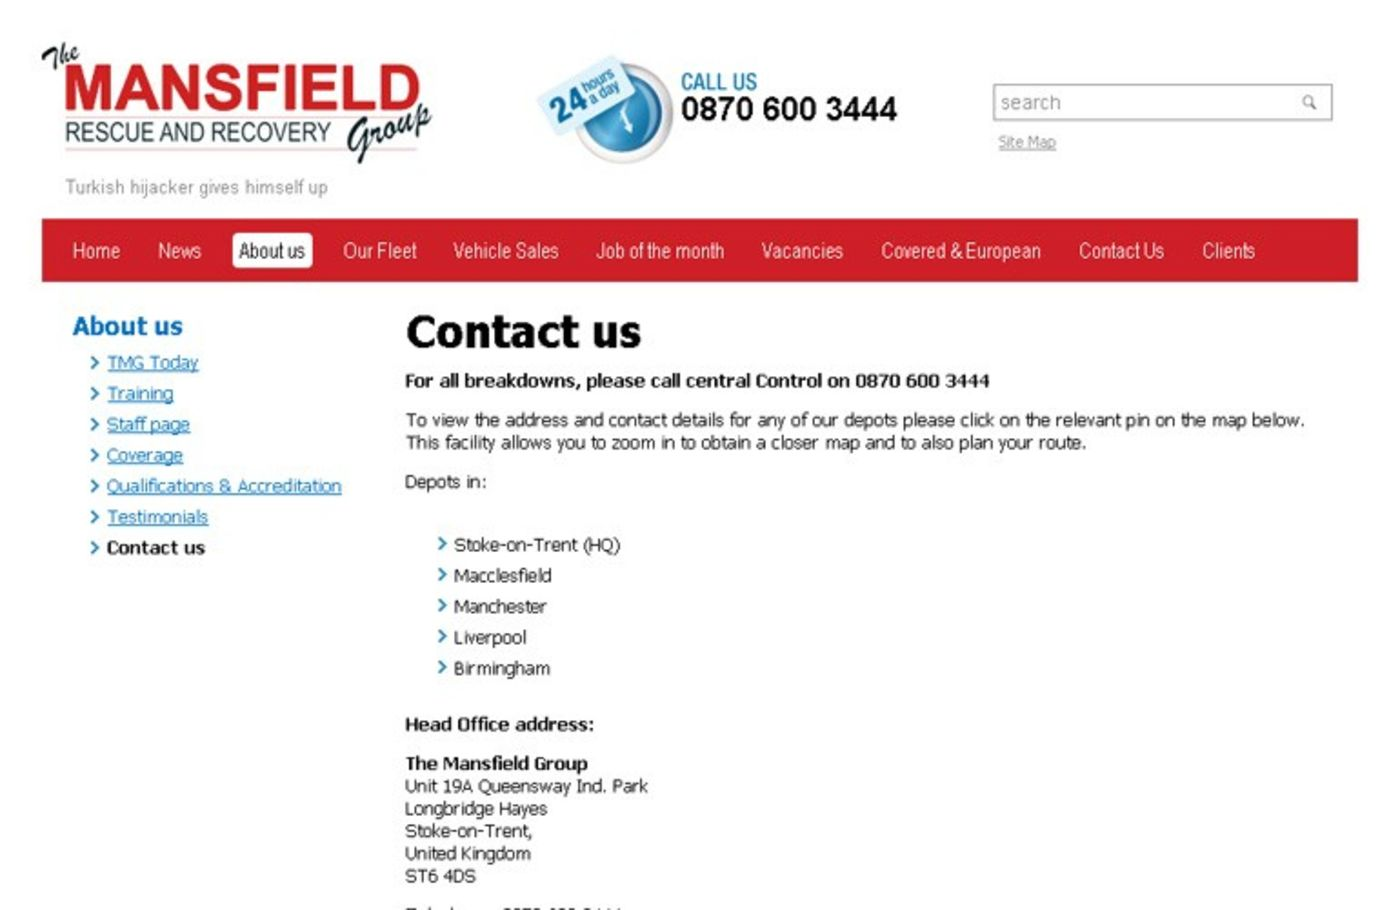 The Mansfield Group Contact us